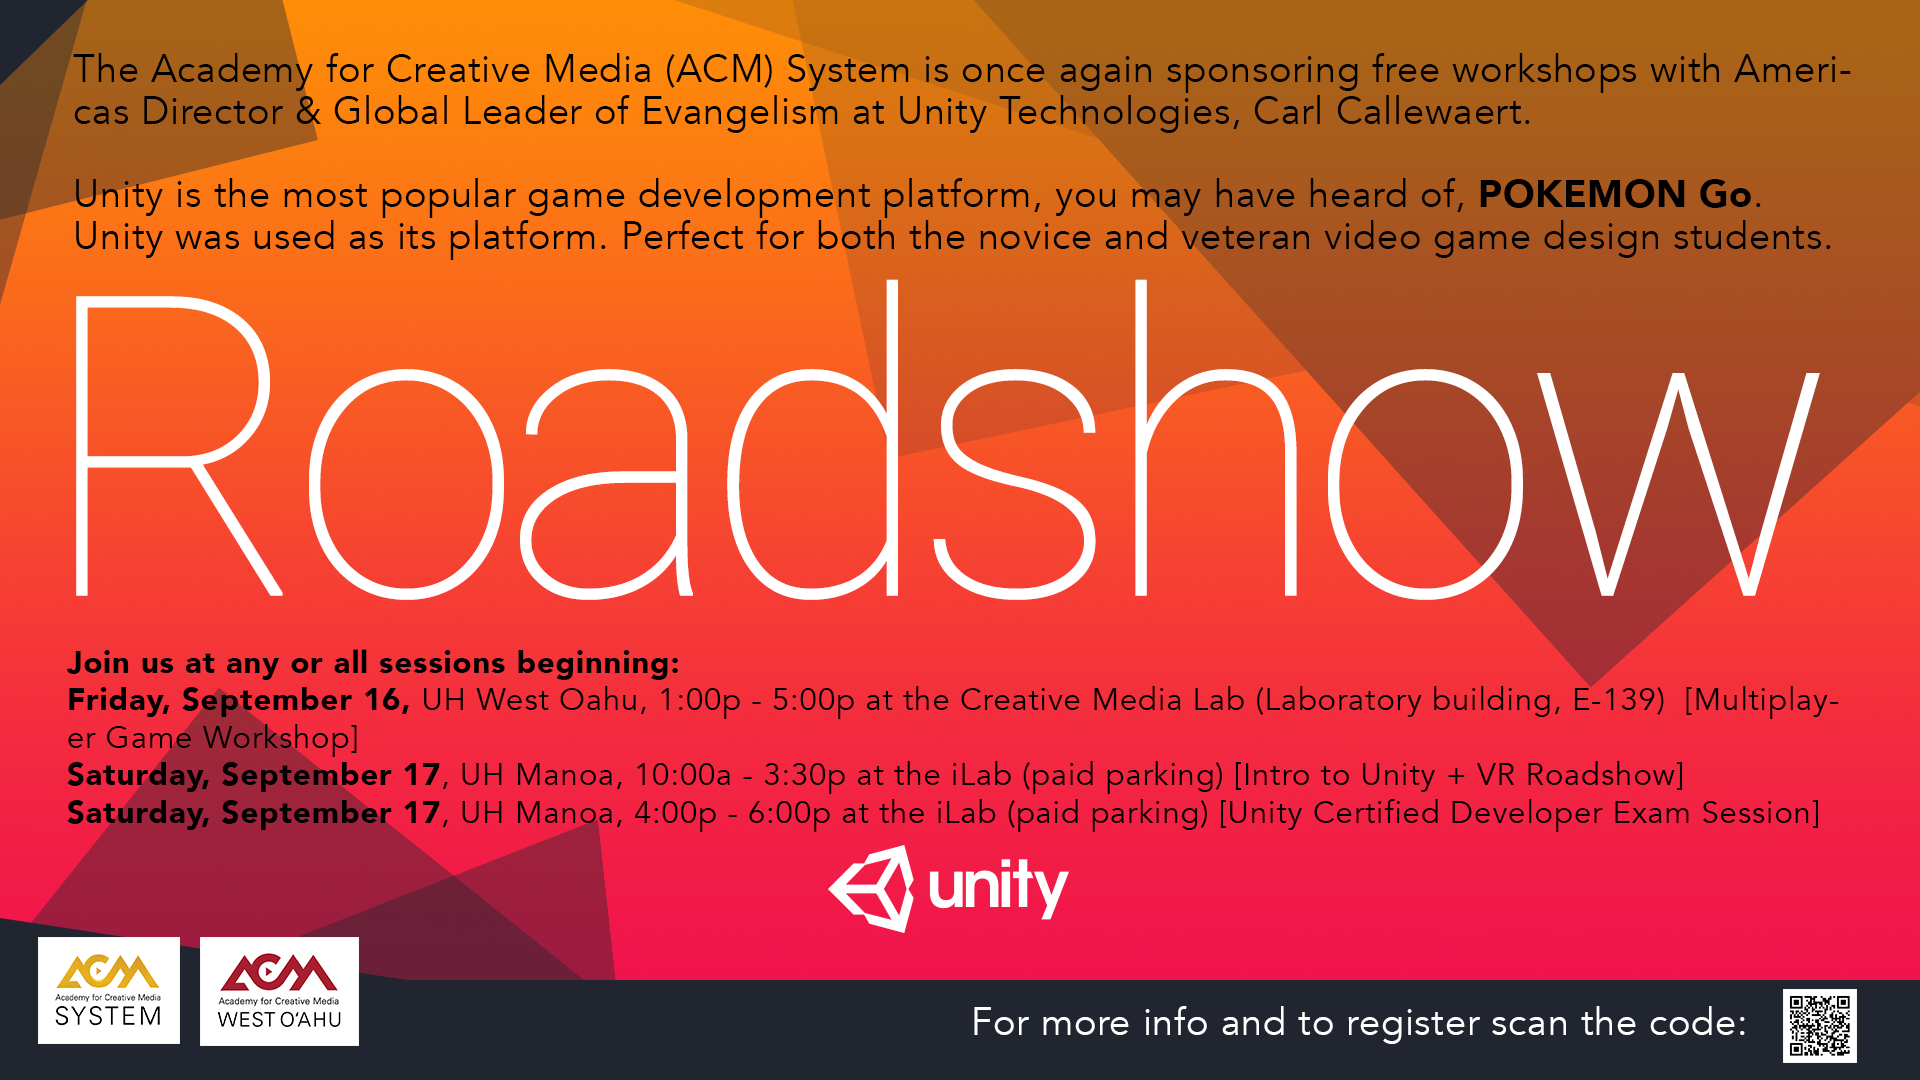 Flyer for Roadshow, featuring Carl Callewaert, Americas Director & Global Leader of Evangelism at Unity Technologies. Sept. 16, 1 - 5 p.m. at UHWO's Creative Media Lab (E139); Sept. 17, 10 a.m.- 3:30 p.m., and 4 - 6 p.m., both at UH Manoa's iLab.